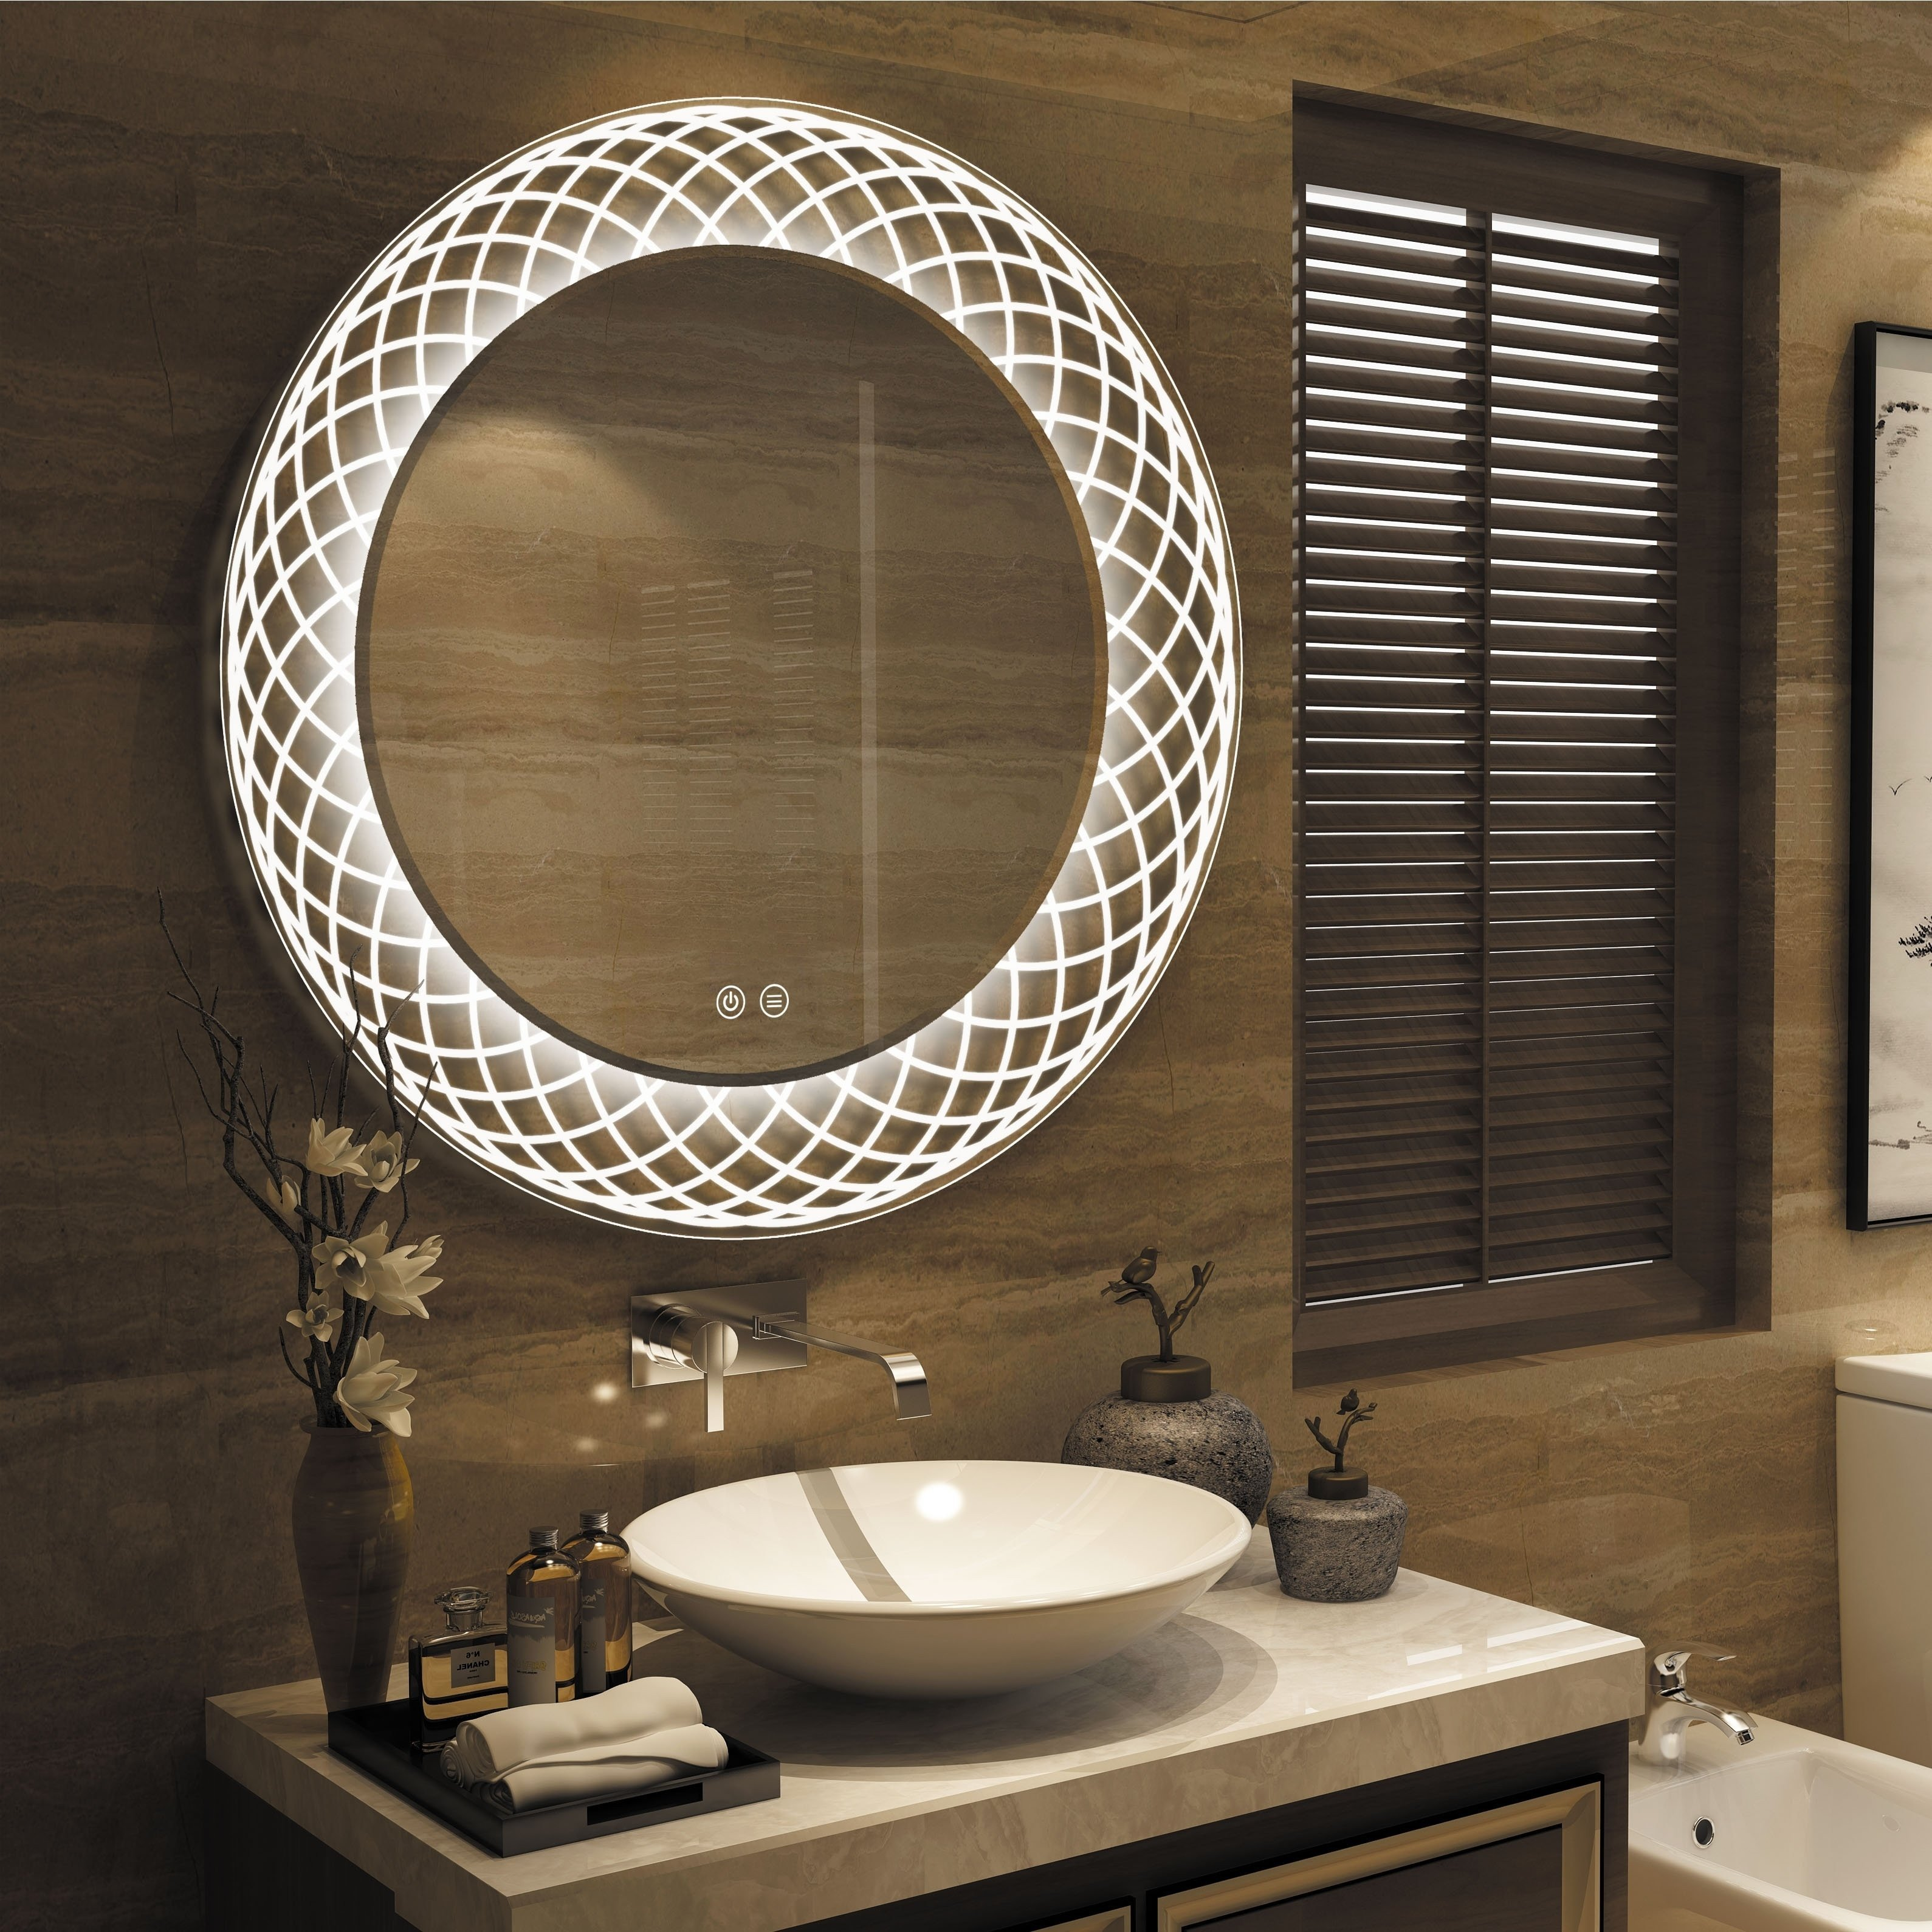 Vanity Mirror with Light for Bedroom Unique Frameless Wall Mounted Led Bathroom Mirror White